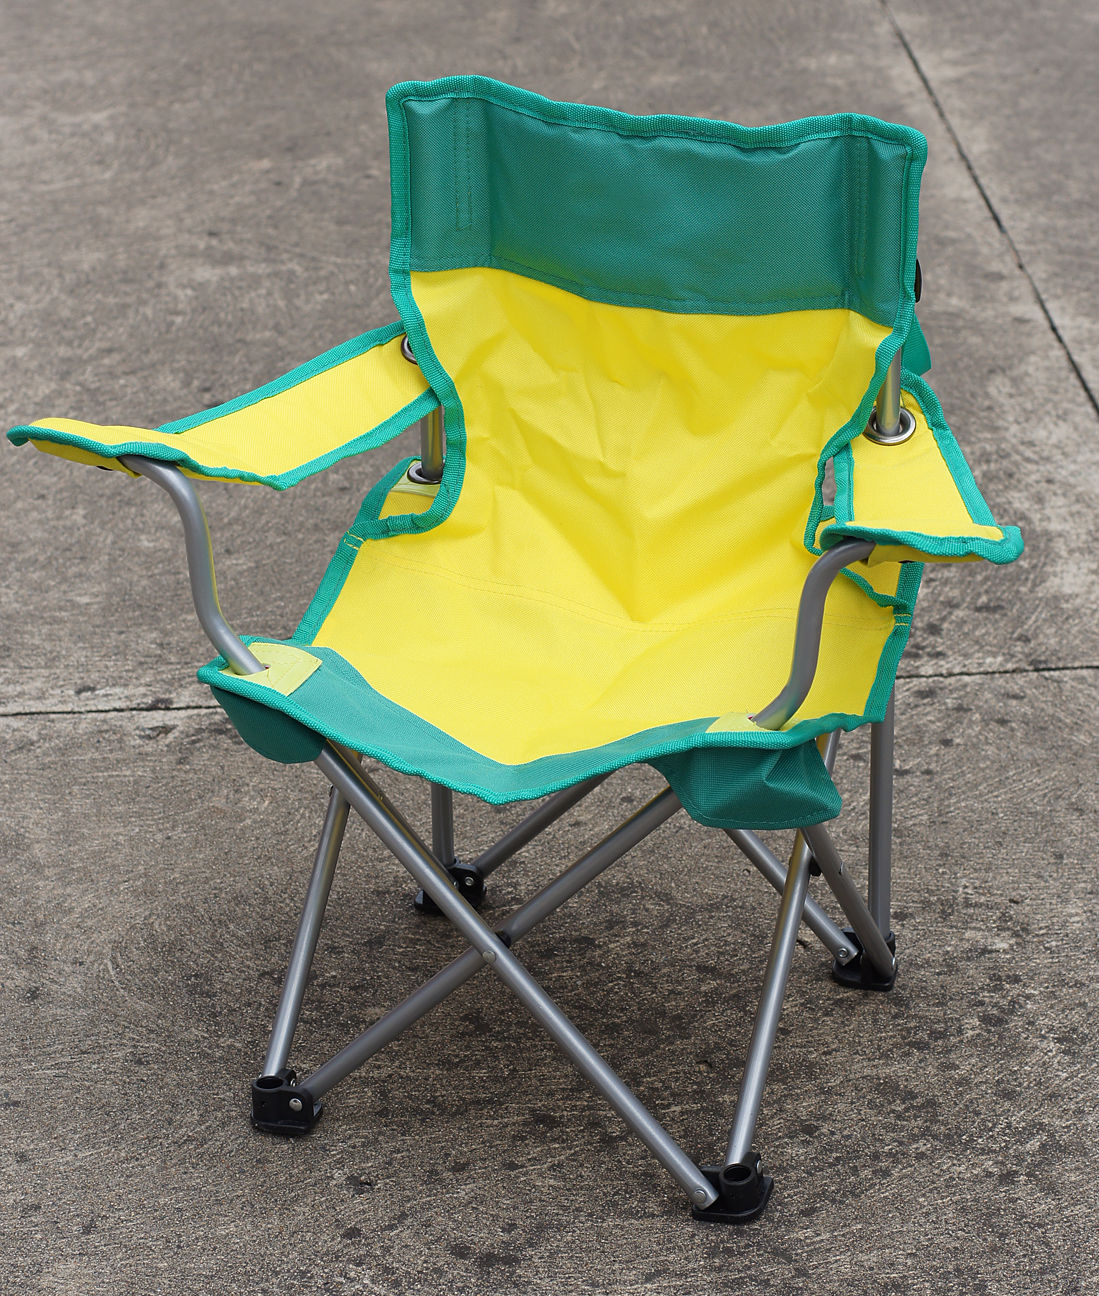 Child Patio Chair Kids Folding Chair With Arms Foldable Light Outdoor